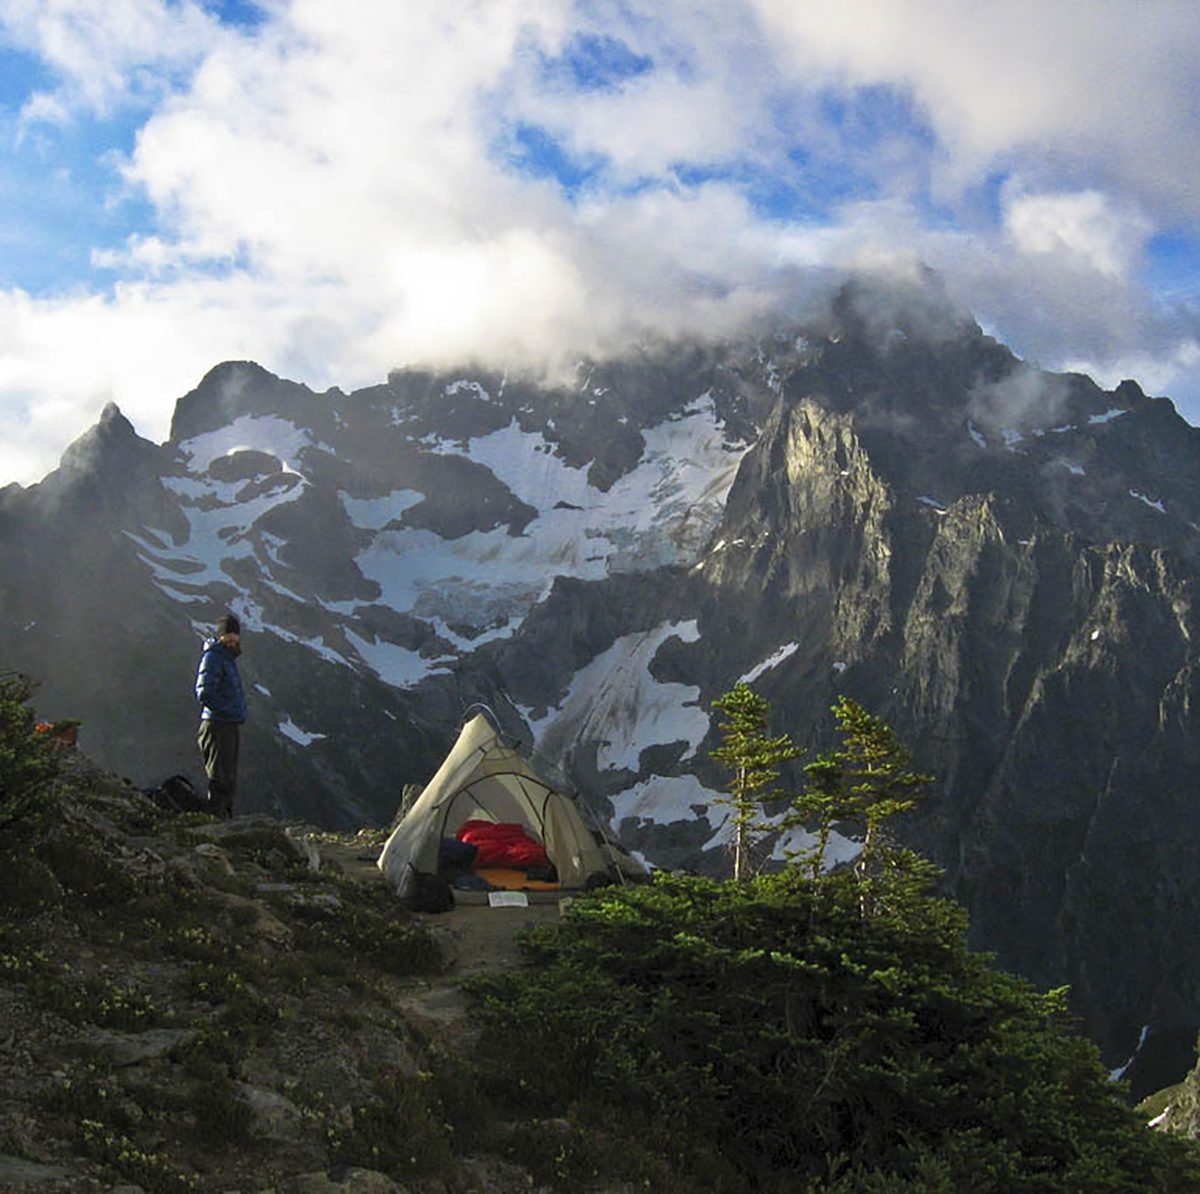 A man standing outside a tent on a mountain peak.